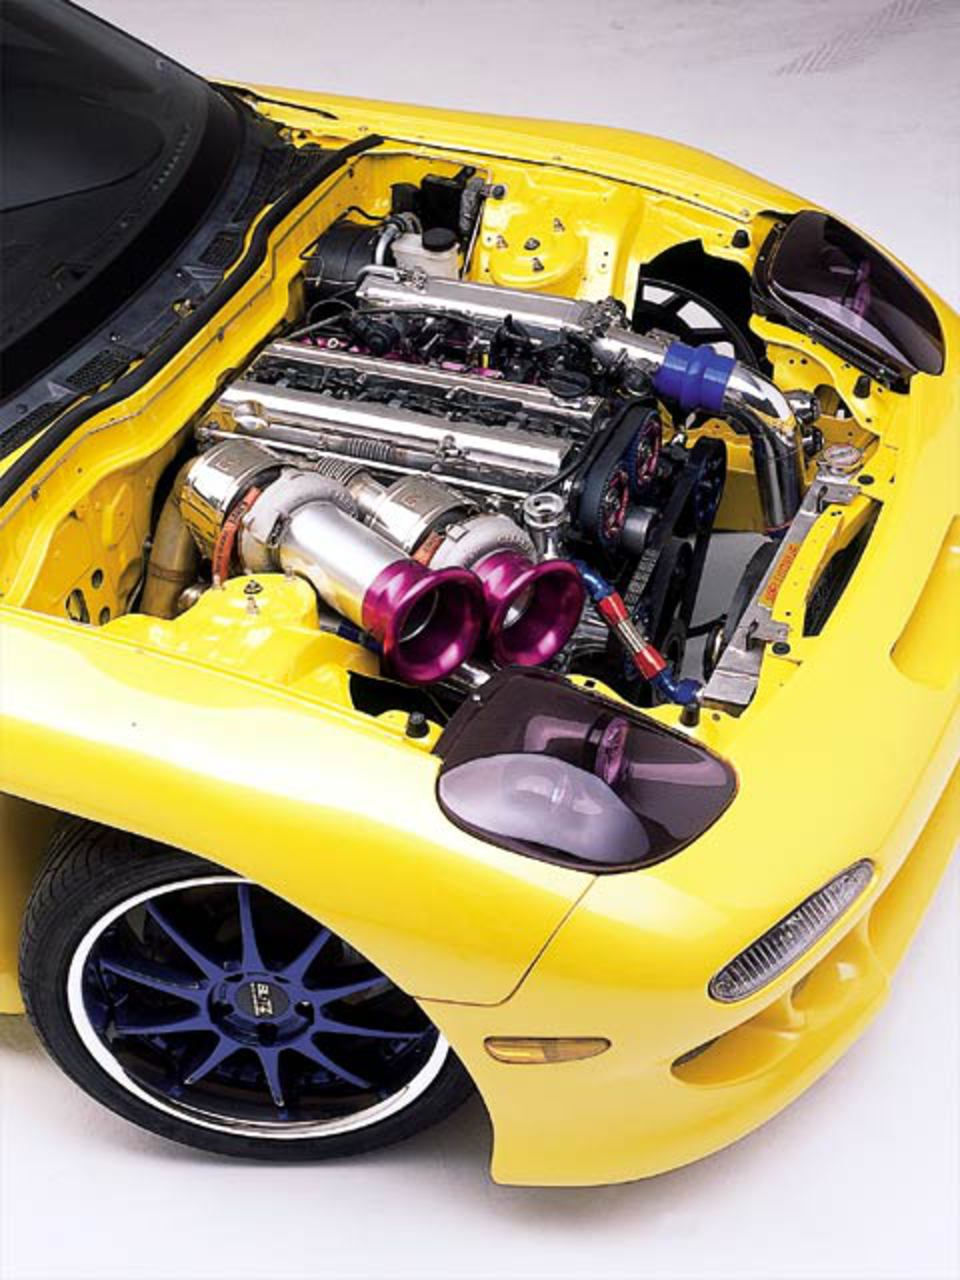 Mazda RX-7 Twin Turbo. View Download Wallpaper. 480x640. Comments